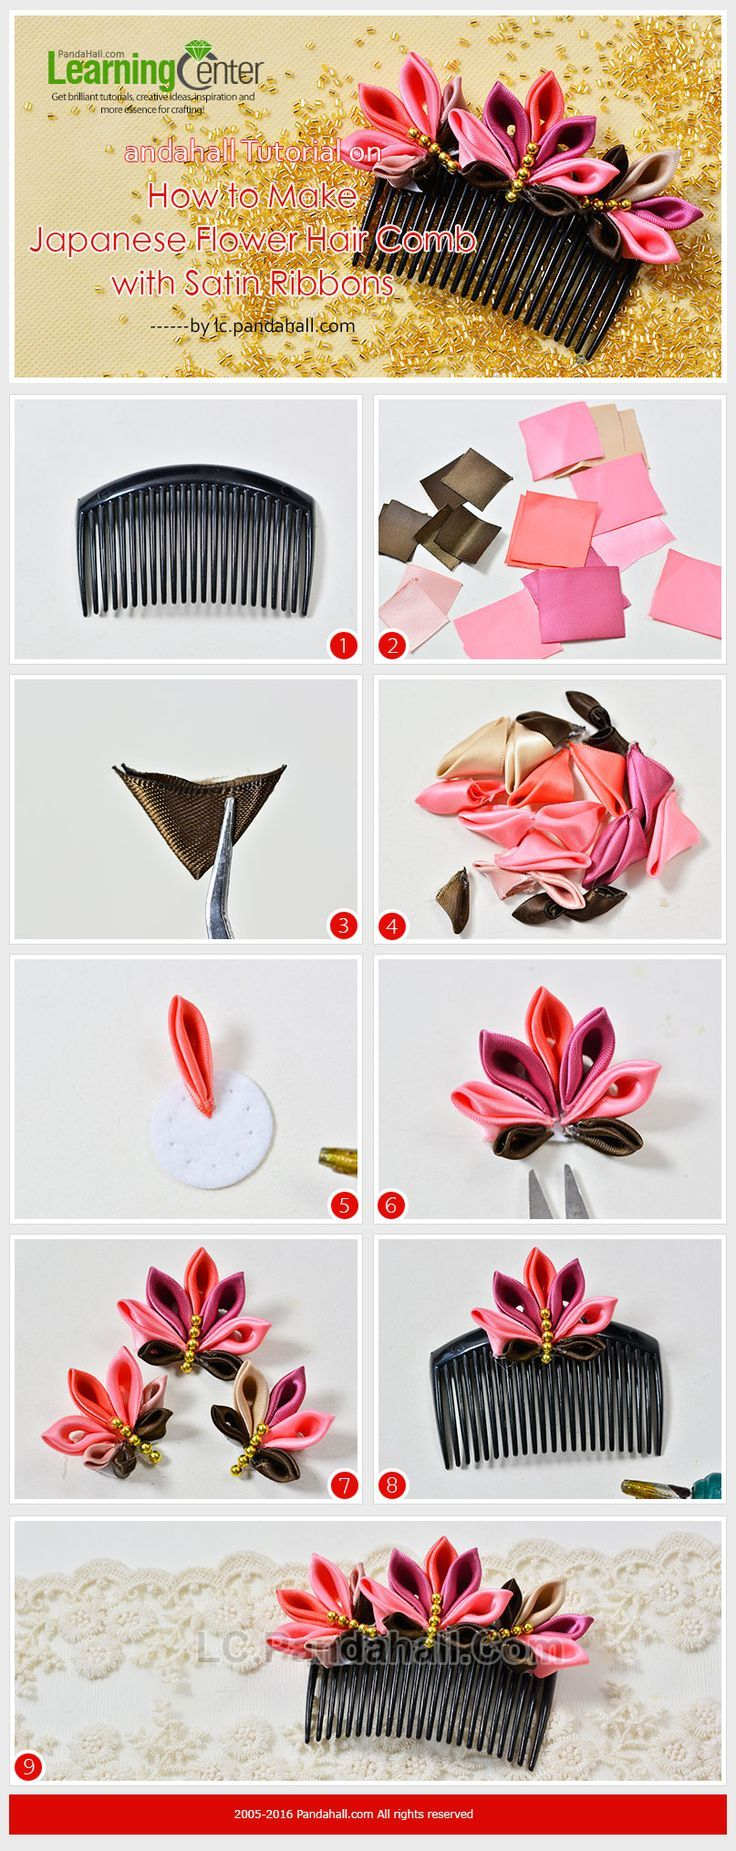 Tutorial on How to Make Japanese Flower Hair Comb with Satin Ribbons Love Japanese crafts? Learn to sew Japanese sewing at www.japanesesewingpatterns.com